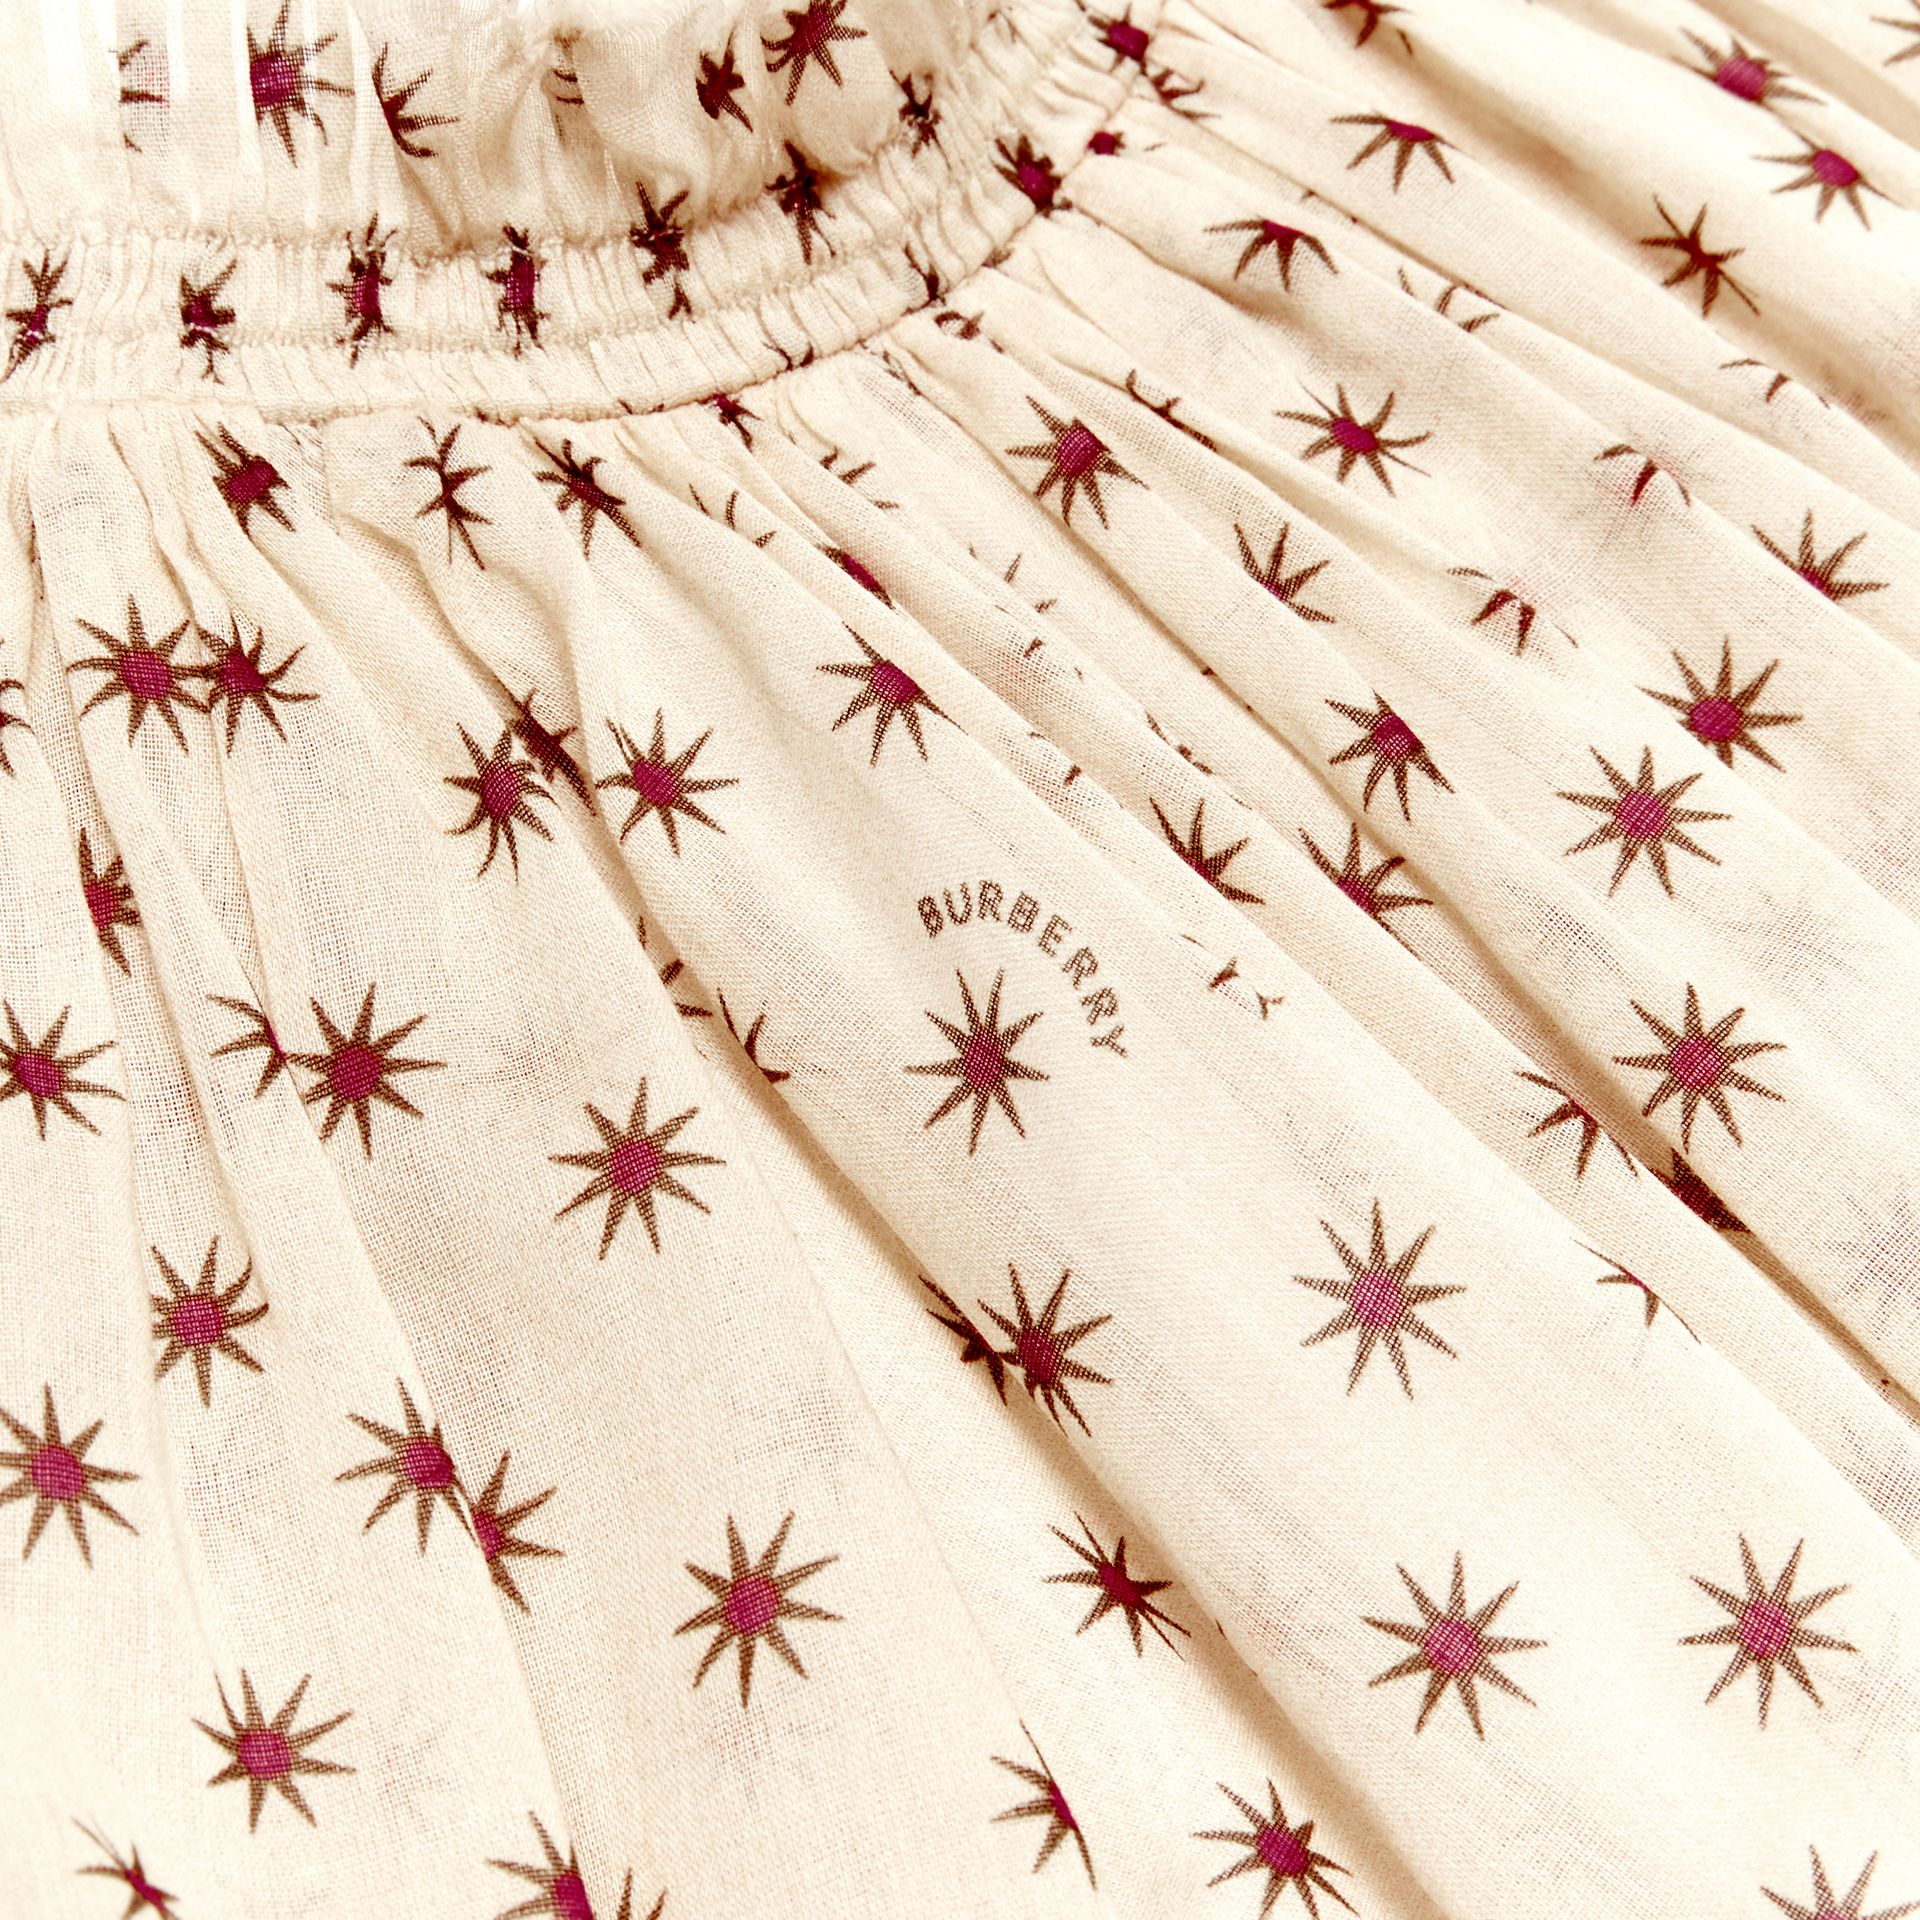 Star Print Gathered Cotton Dress in Military Red - Children | Burberry United Kingdom - gallery image 1